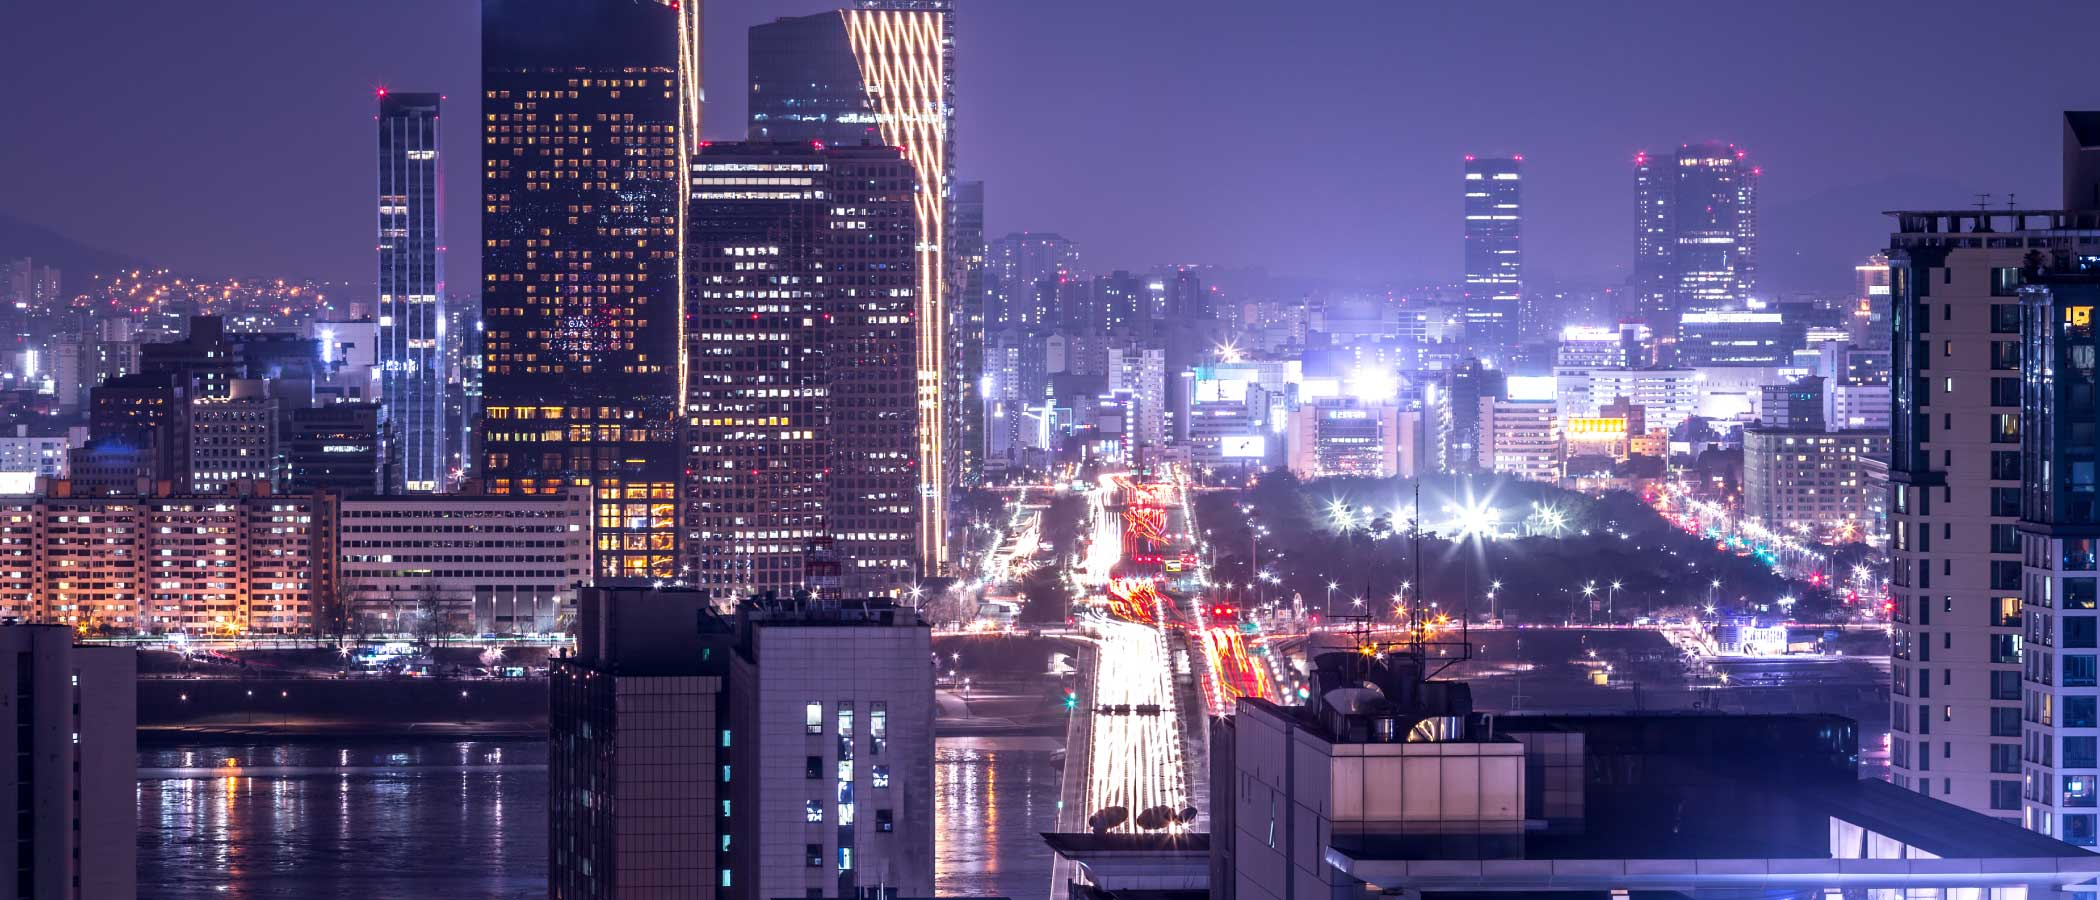 Glowing city skyline with mix of building types from low-rise apartments to high-rise towers.